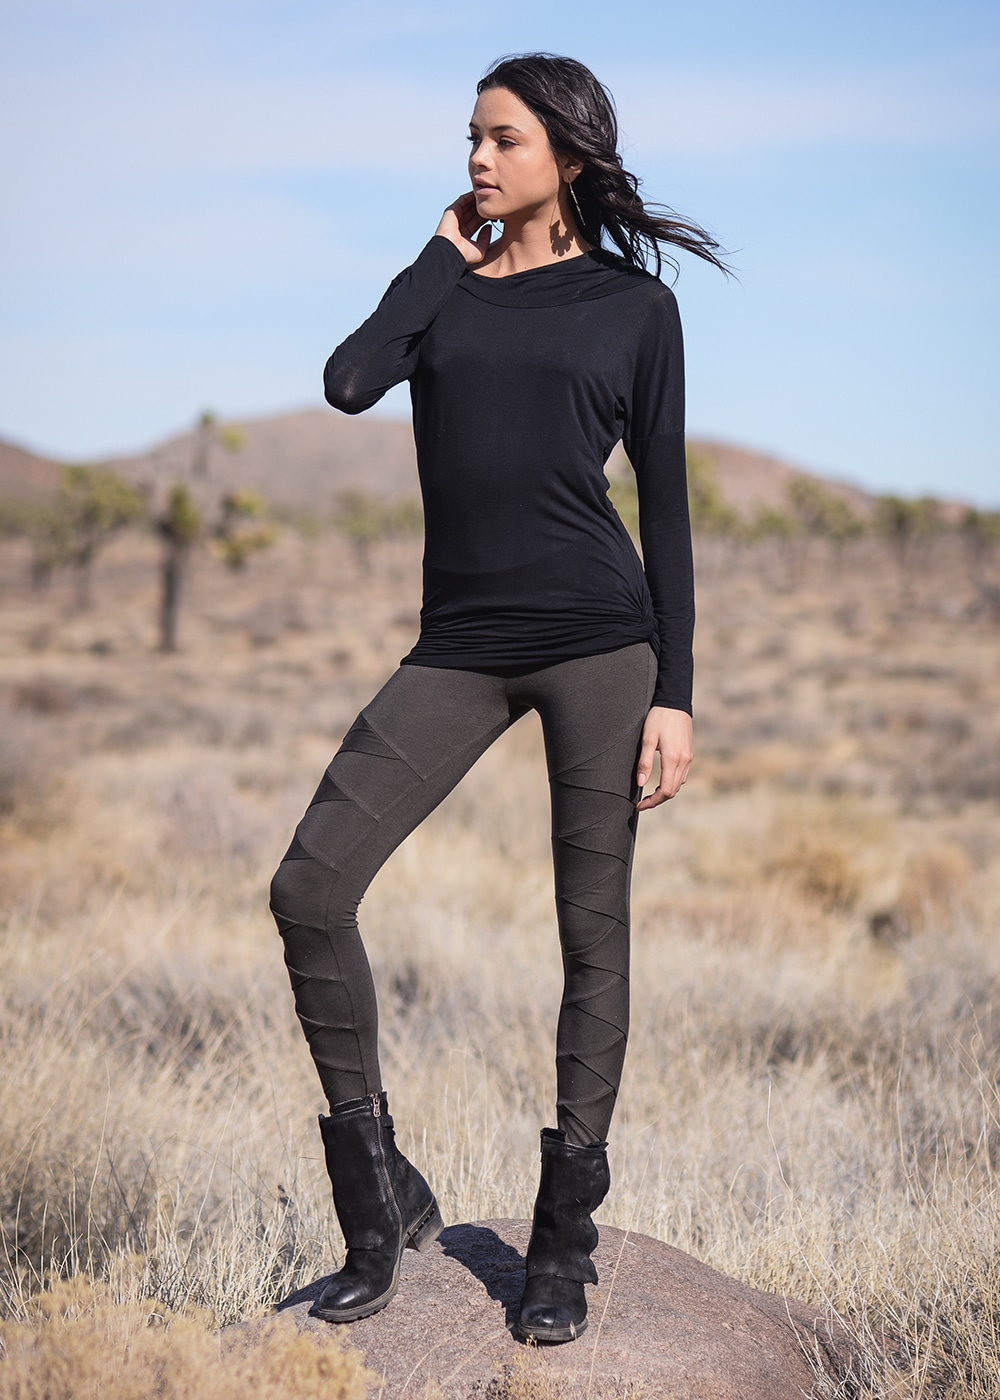 Hemp Eternity Tunic in Black by Nomads Hemp Wear Full Body